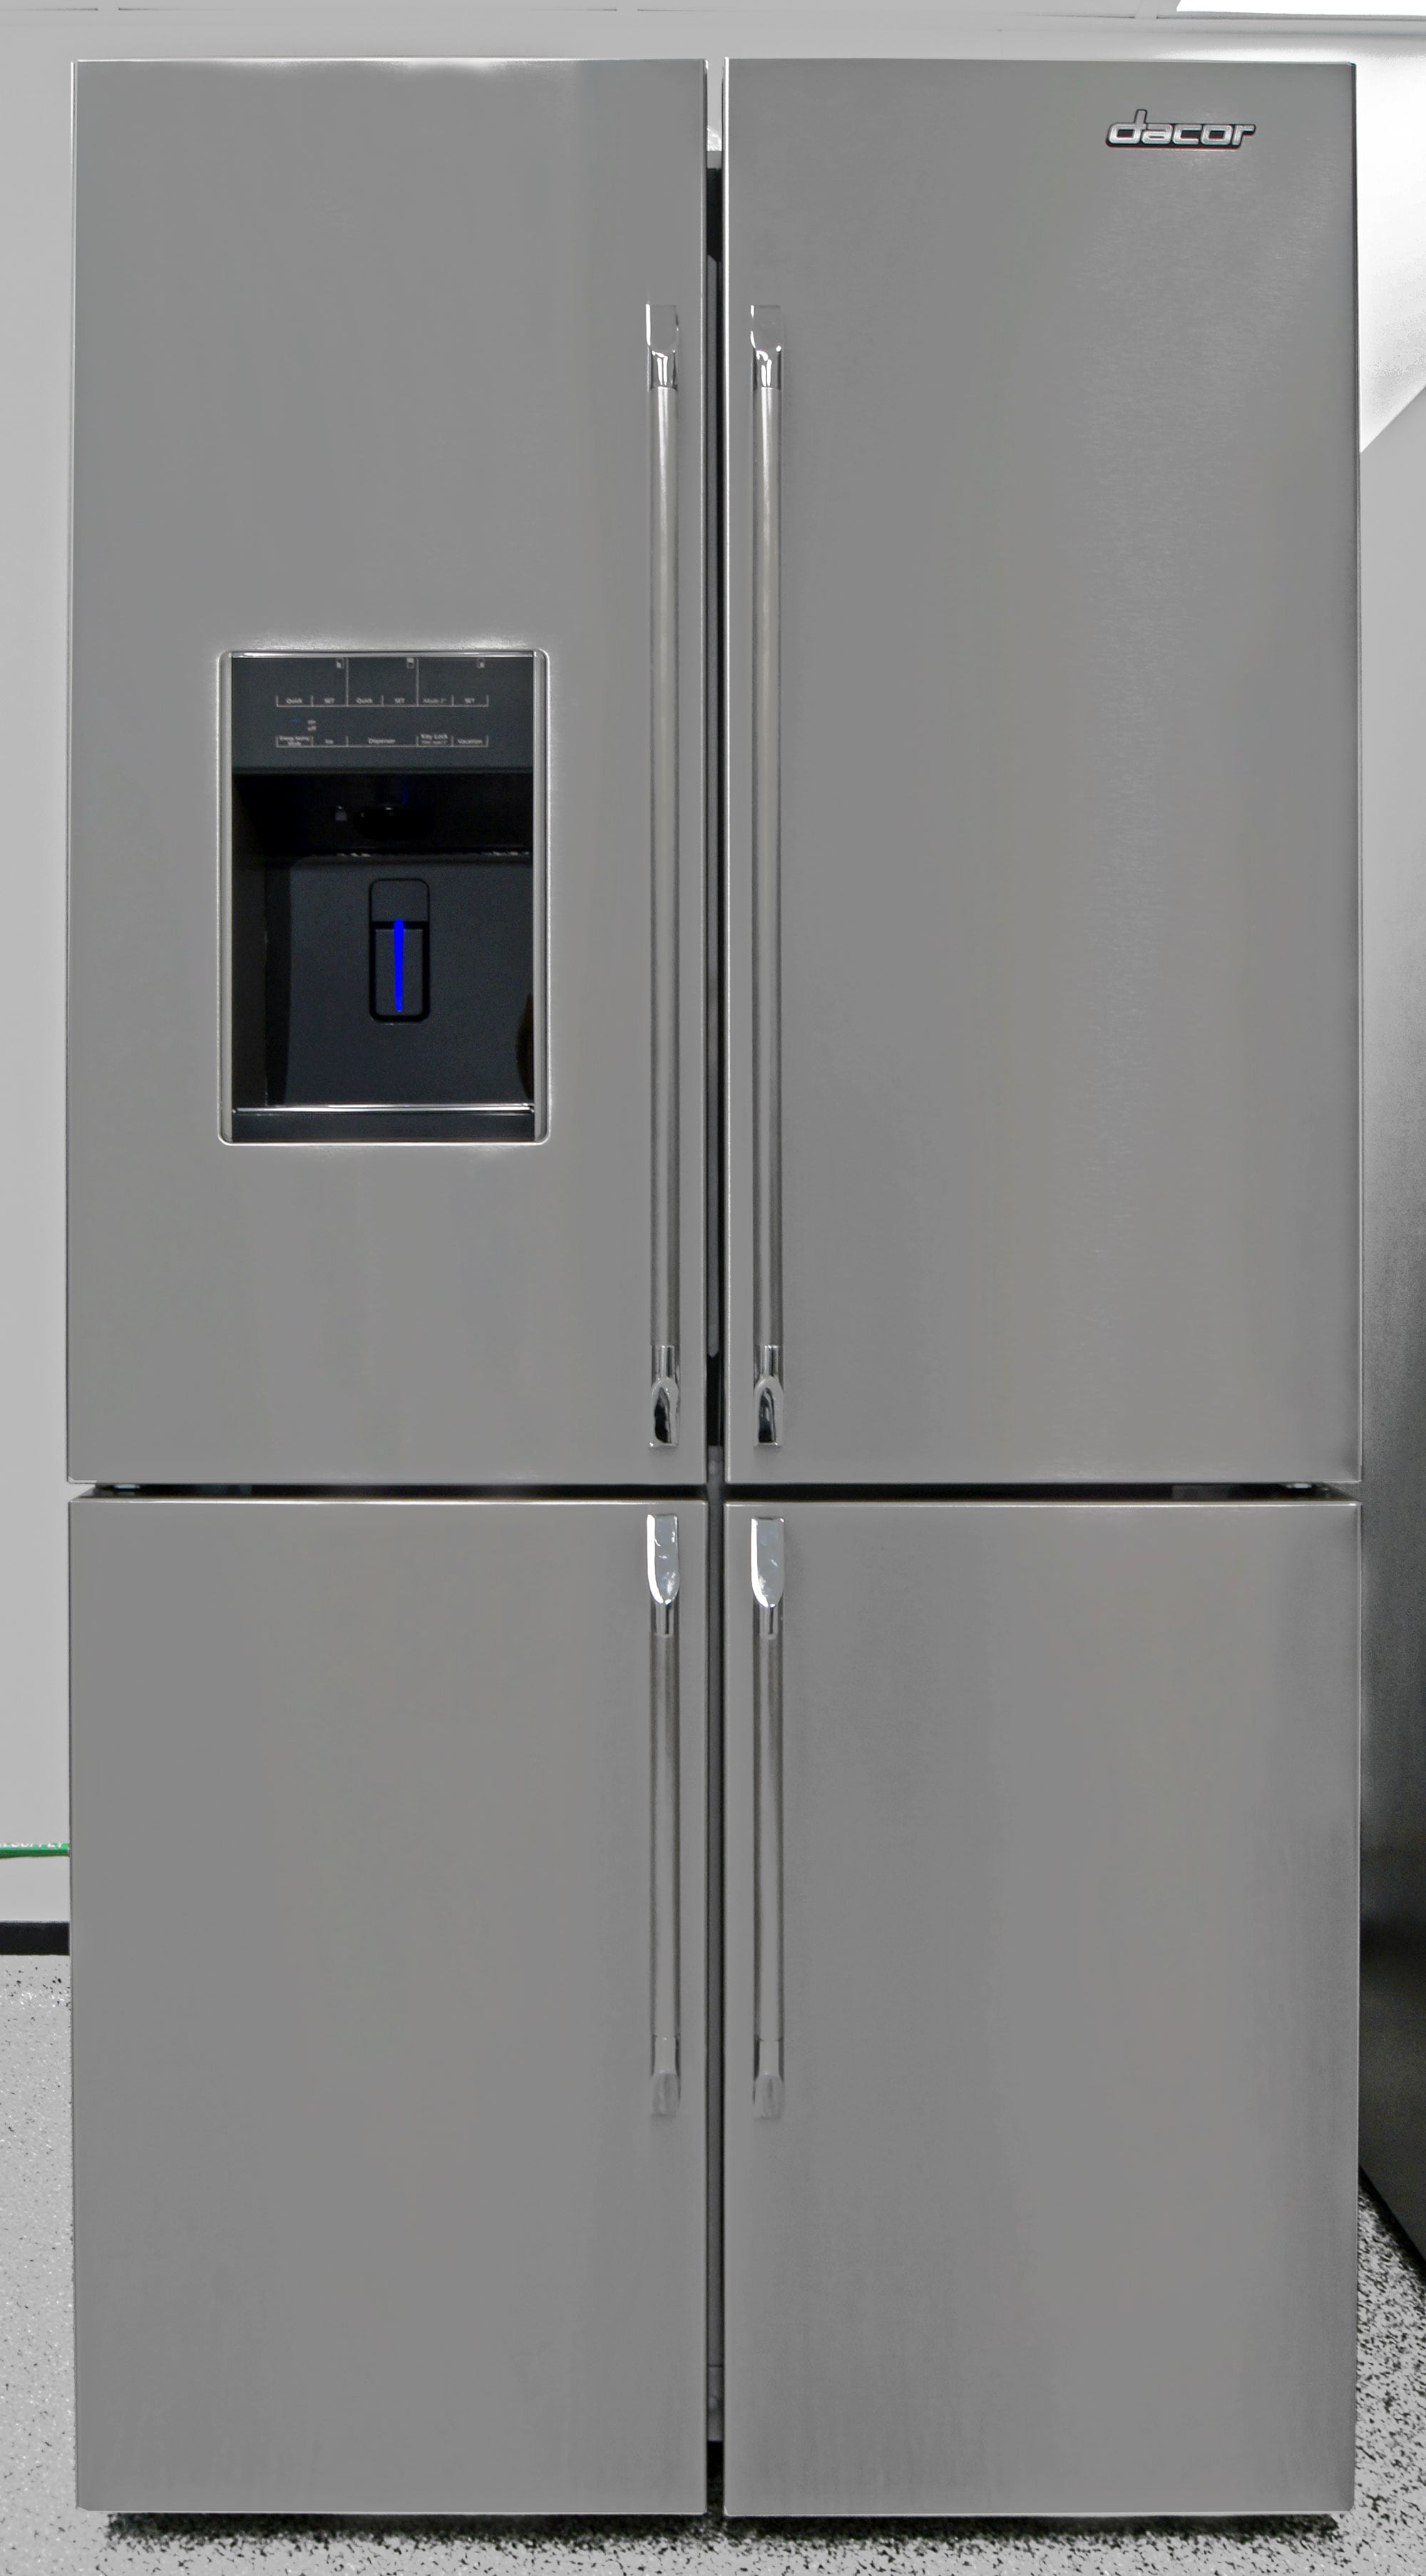 The Dacor DTF364SIWS is the latest entry into the American four-door fridge market.